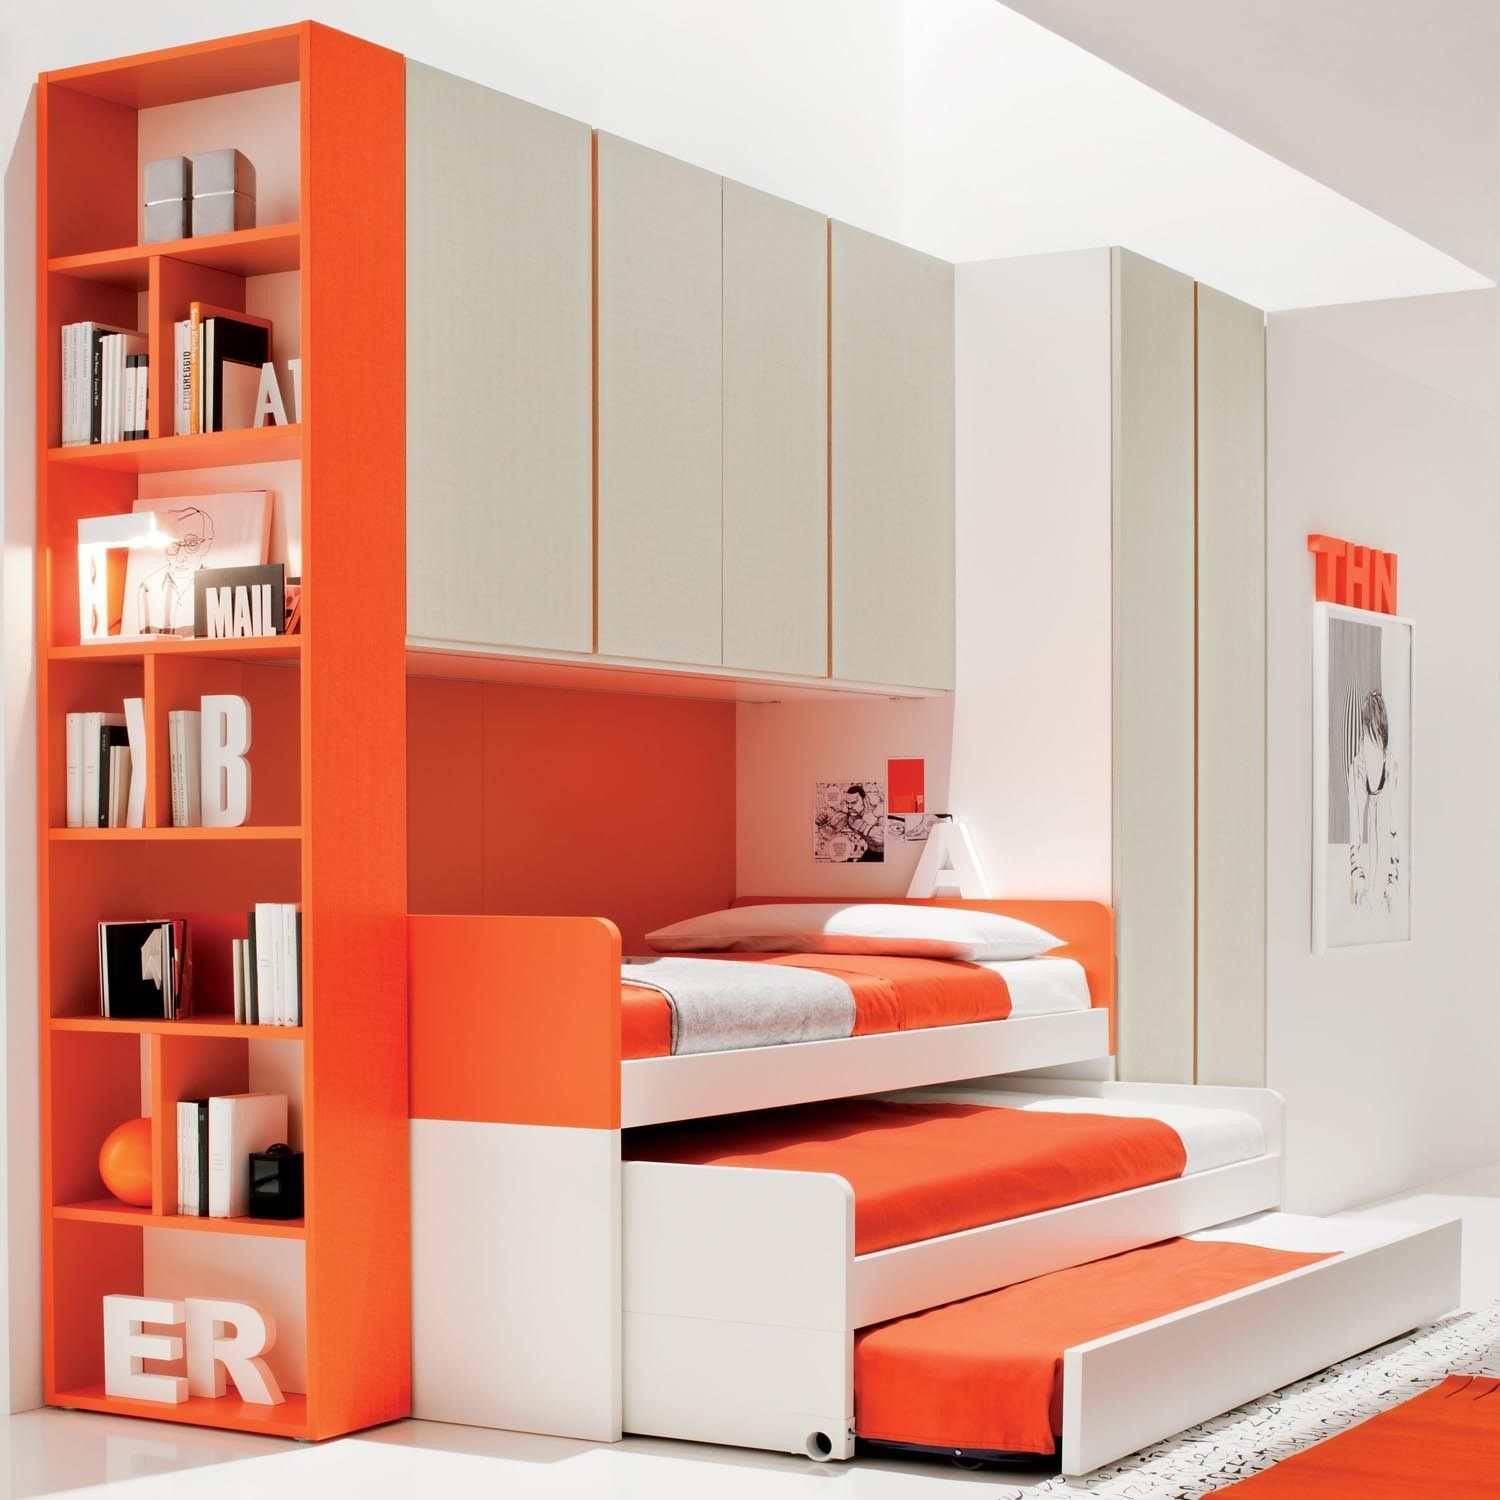 Gentil Splendid Modern Space Saving Bedroom Furniture Sets For Kids Design With  White Orange Bunk Bed Along Pull Out Bed Also Storage Orange Shelves Also  White ...